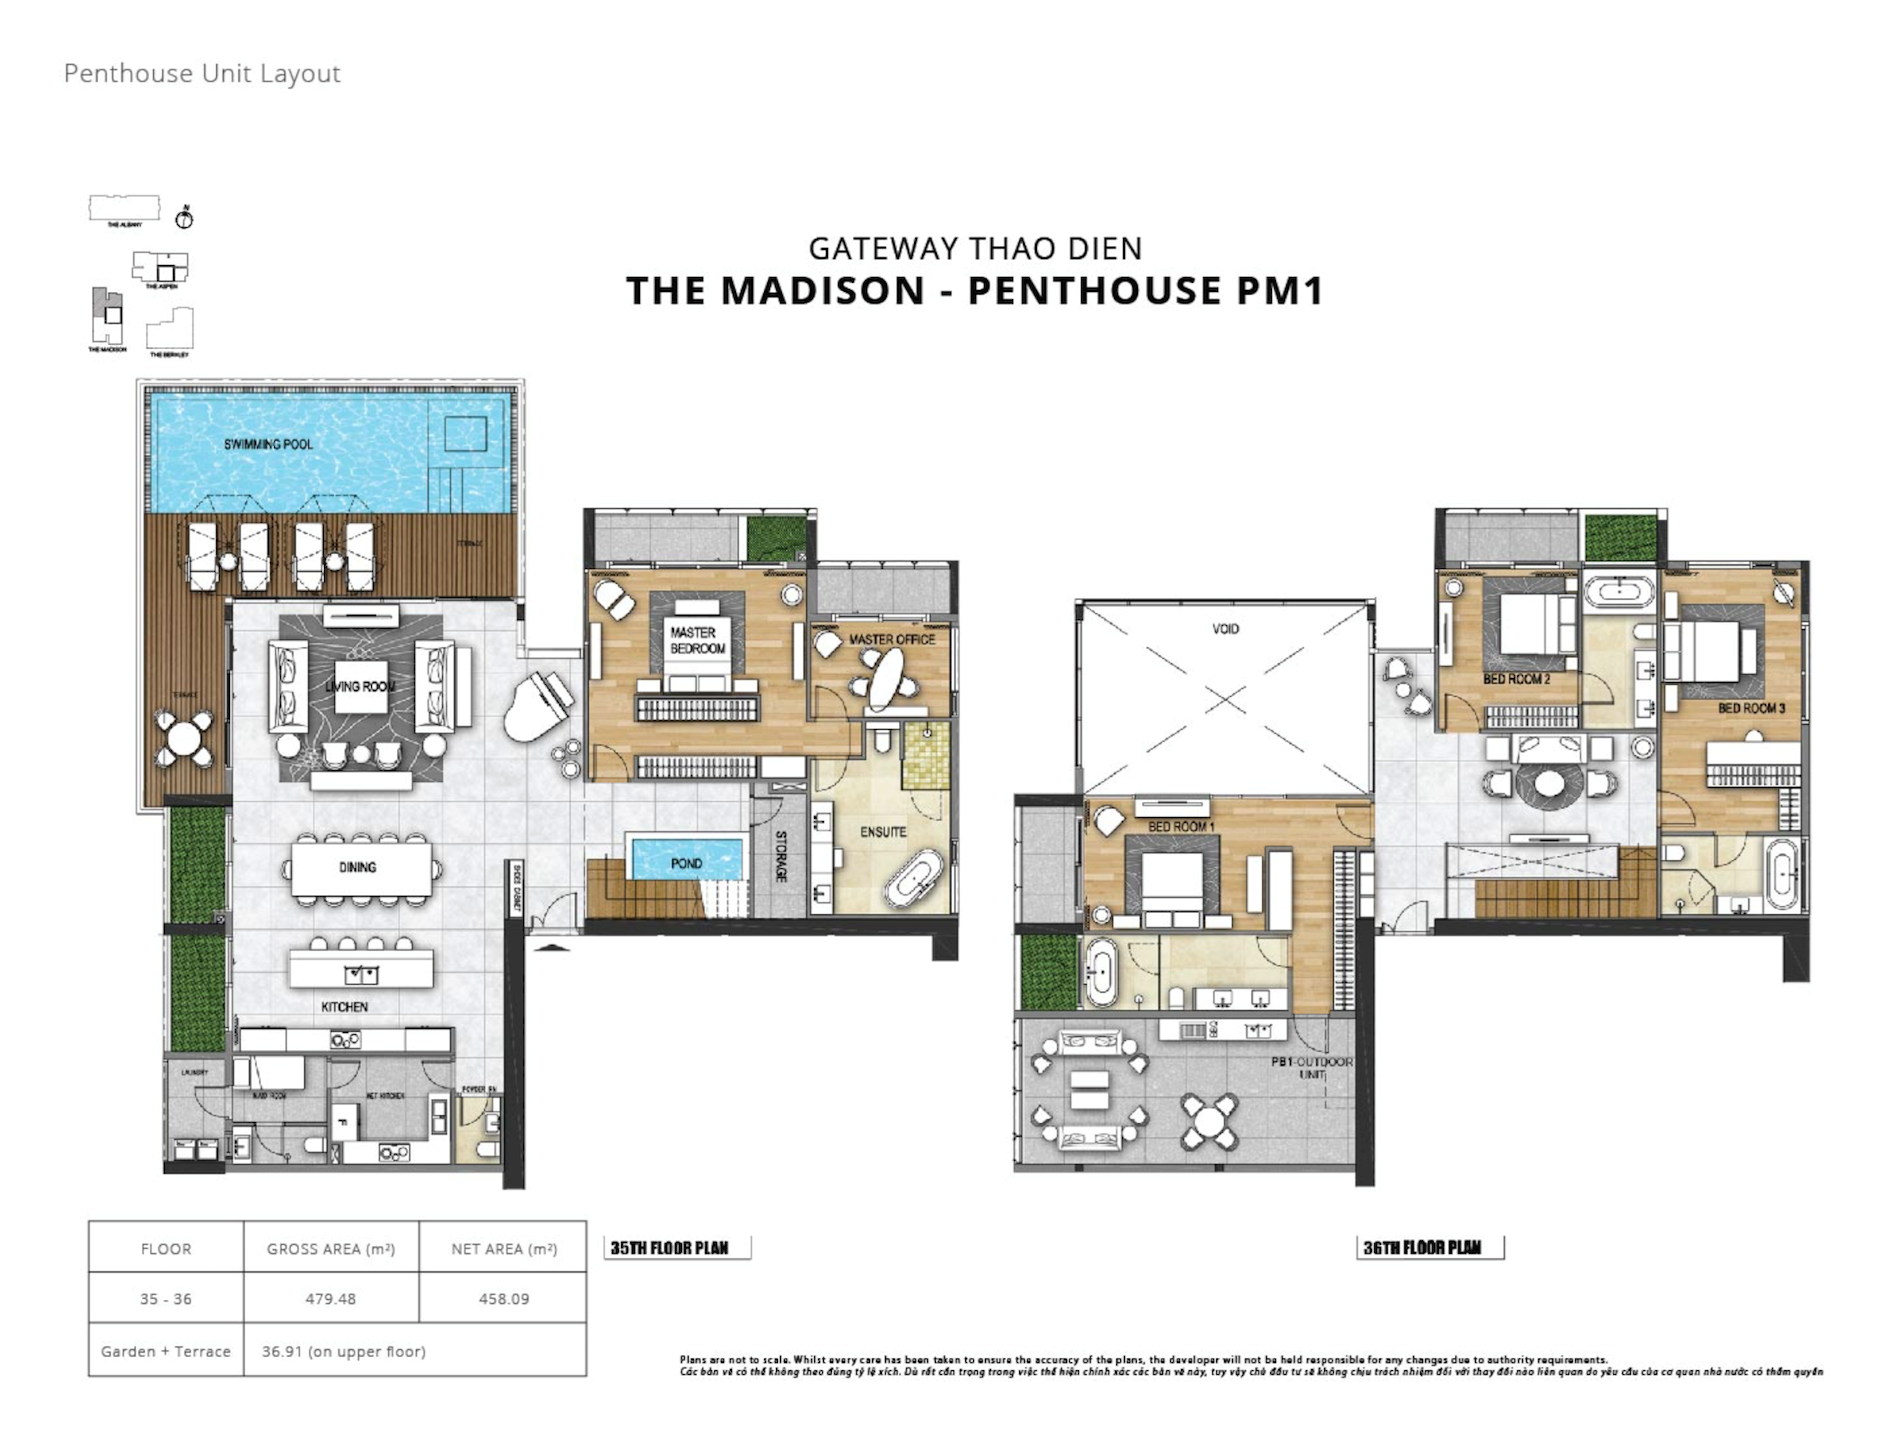 https://saos.vn/Uploads/t/pe/penthouse-gateway-thao-dien-duplex-penthouse-the-madison-pm1_0014023.png